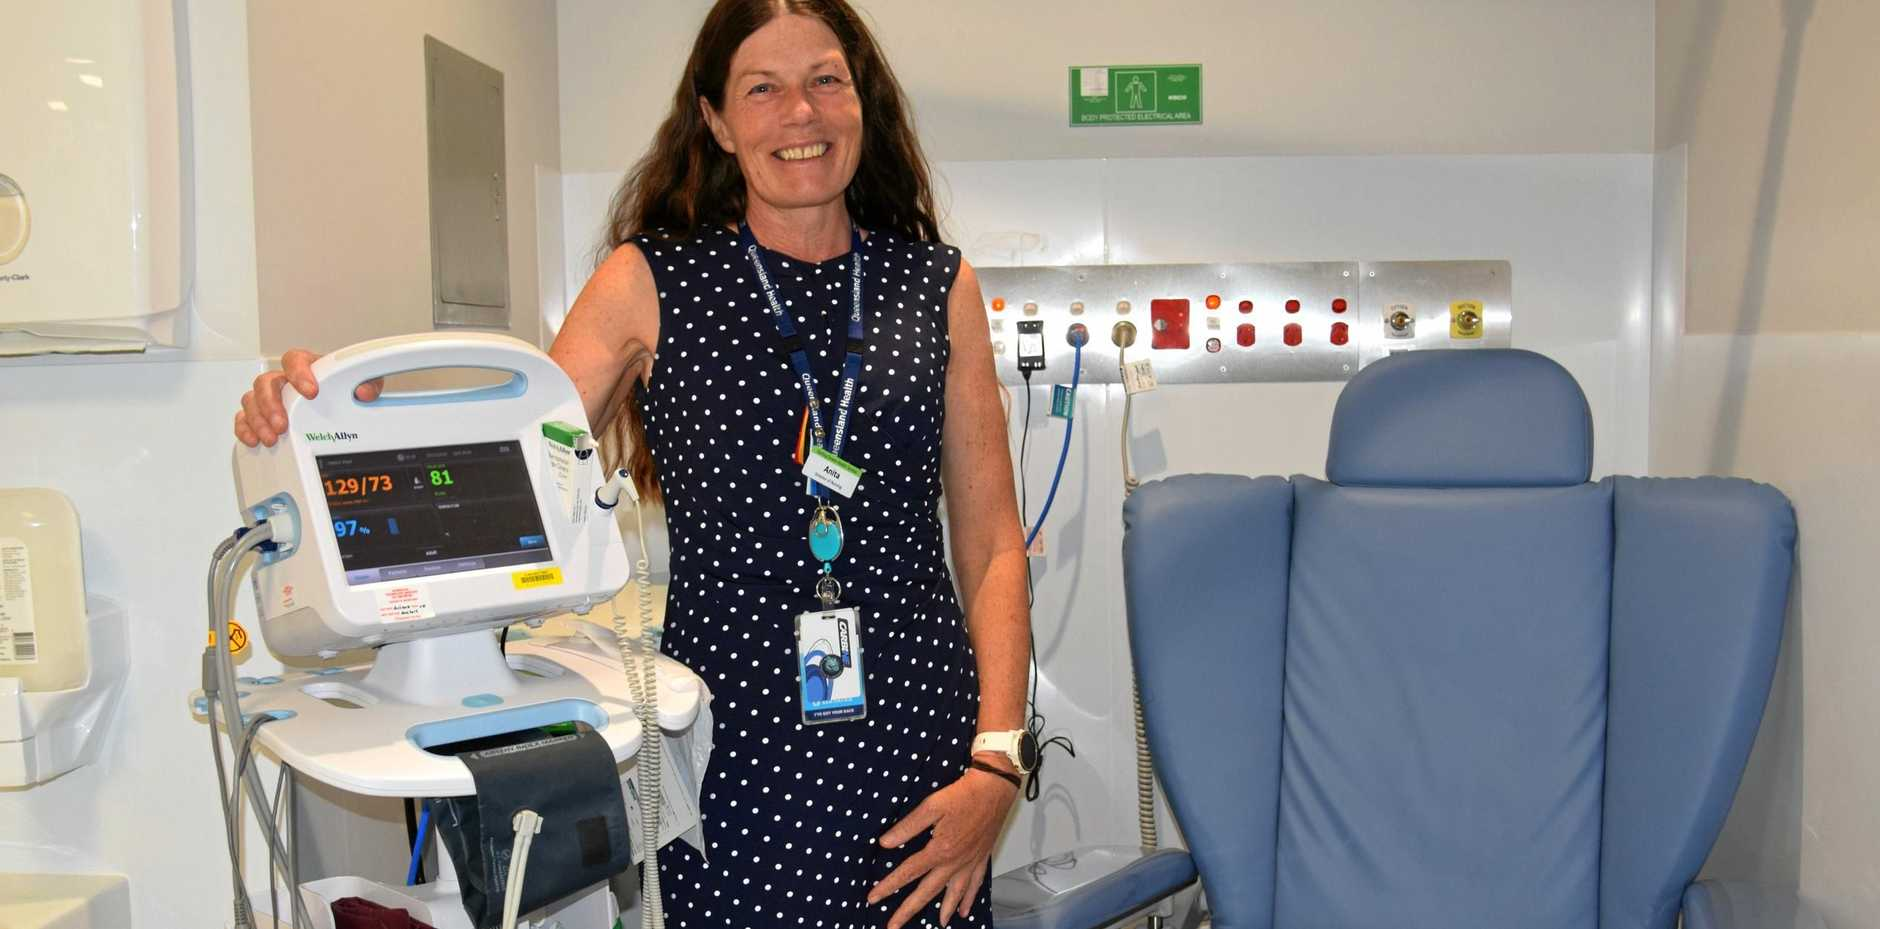 FRESH START: Warwick Hospital director of nursing Anita Bolton is proud of the new private and dedicated spaces created through the $3 million emergency department upgrade.